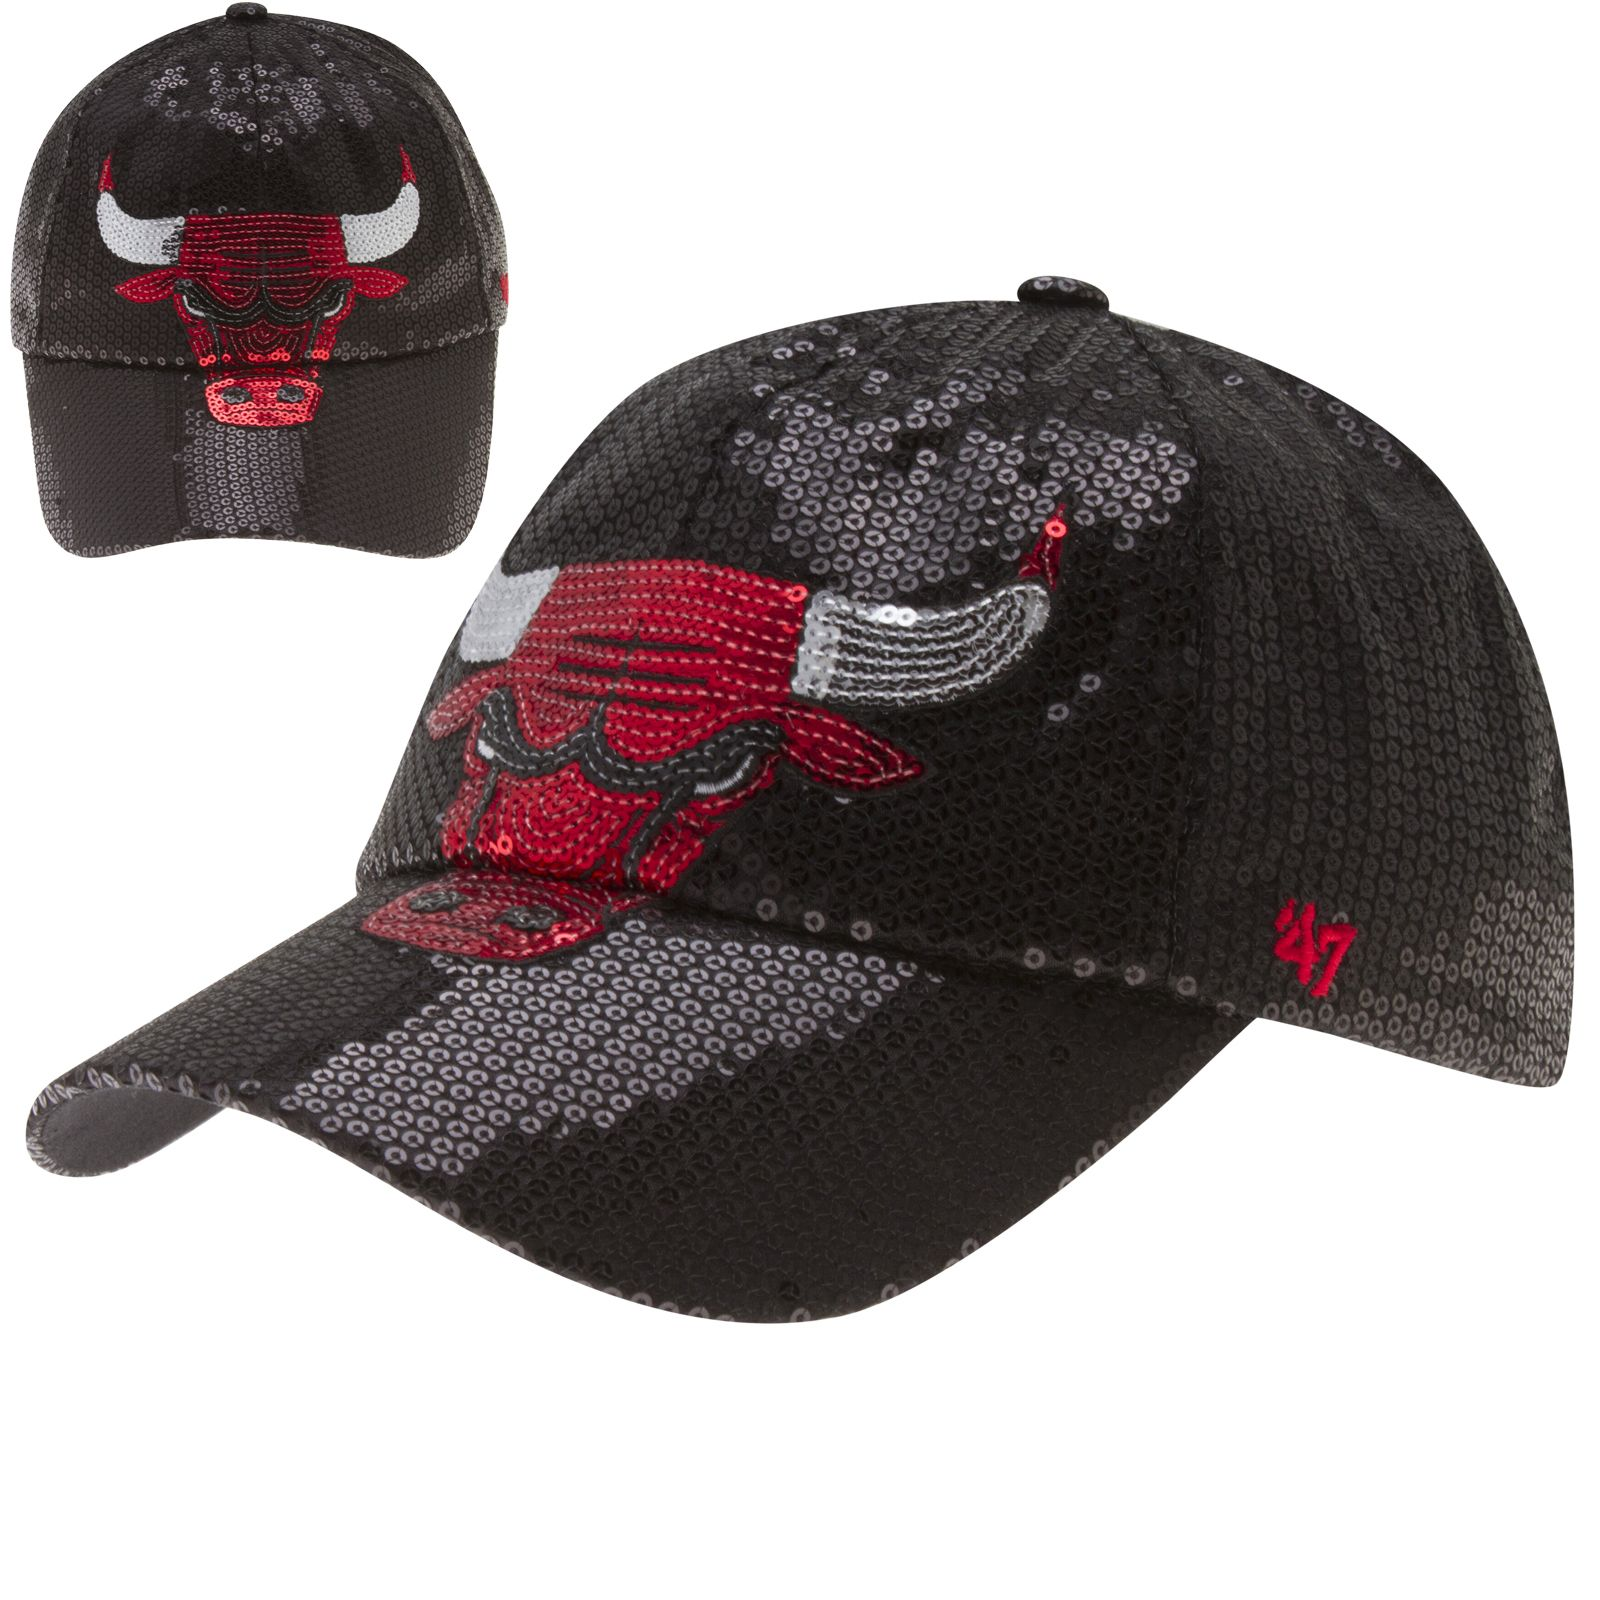 Chicago Cubs Women s Black Sequin Angry Bull Logo Dazzle Adjustable Hat by   47  Chicago  Bulls  ChicagoBulls  BullsNation af3236f46c